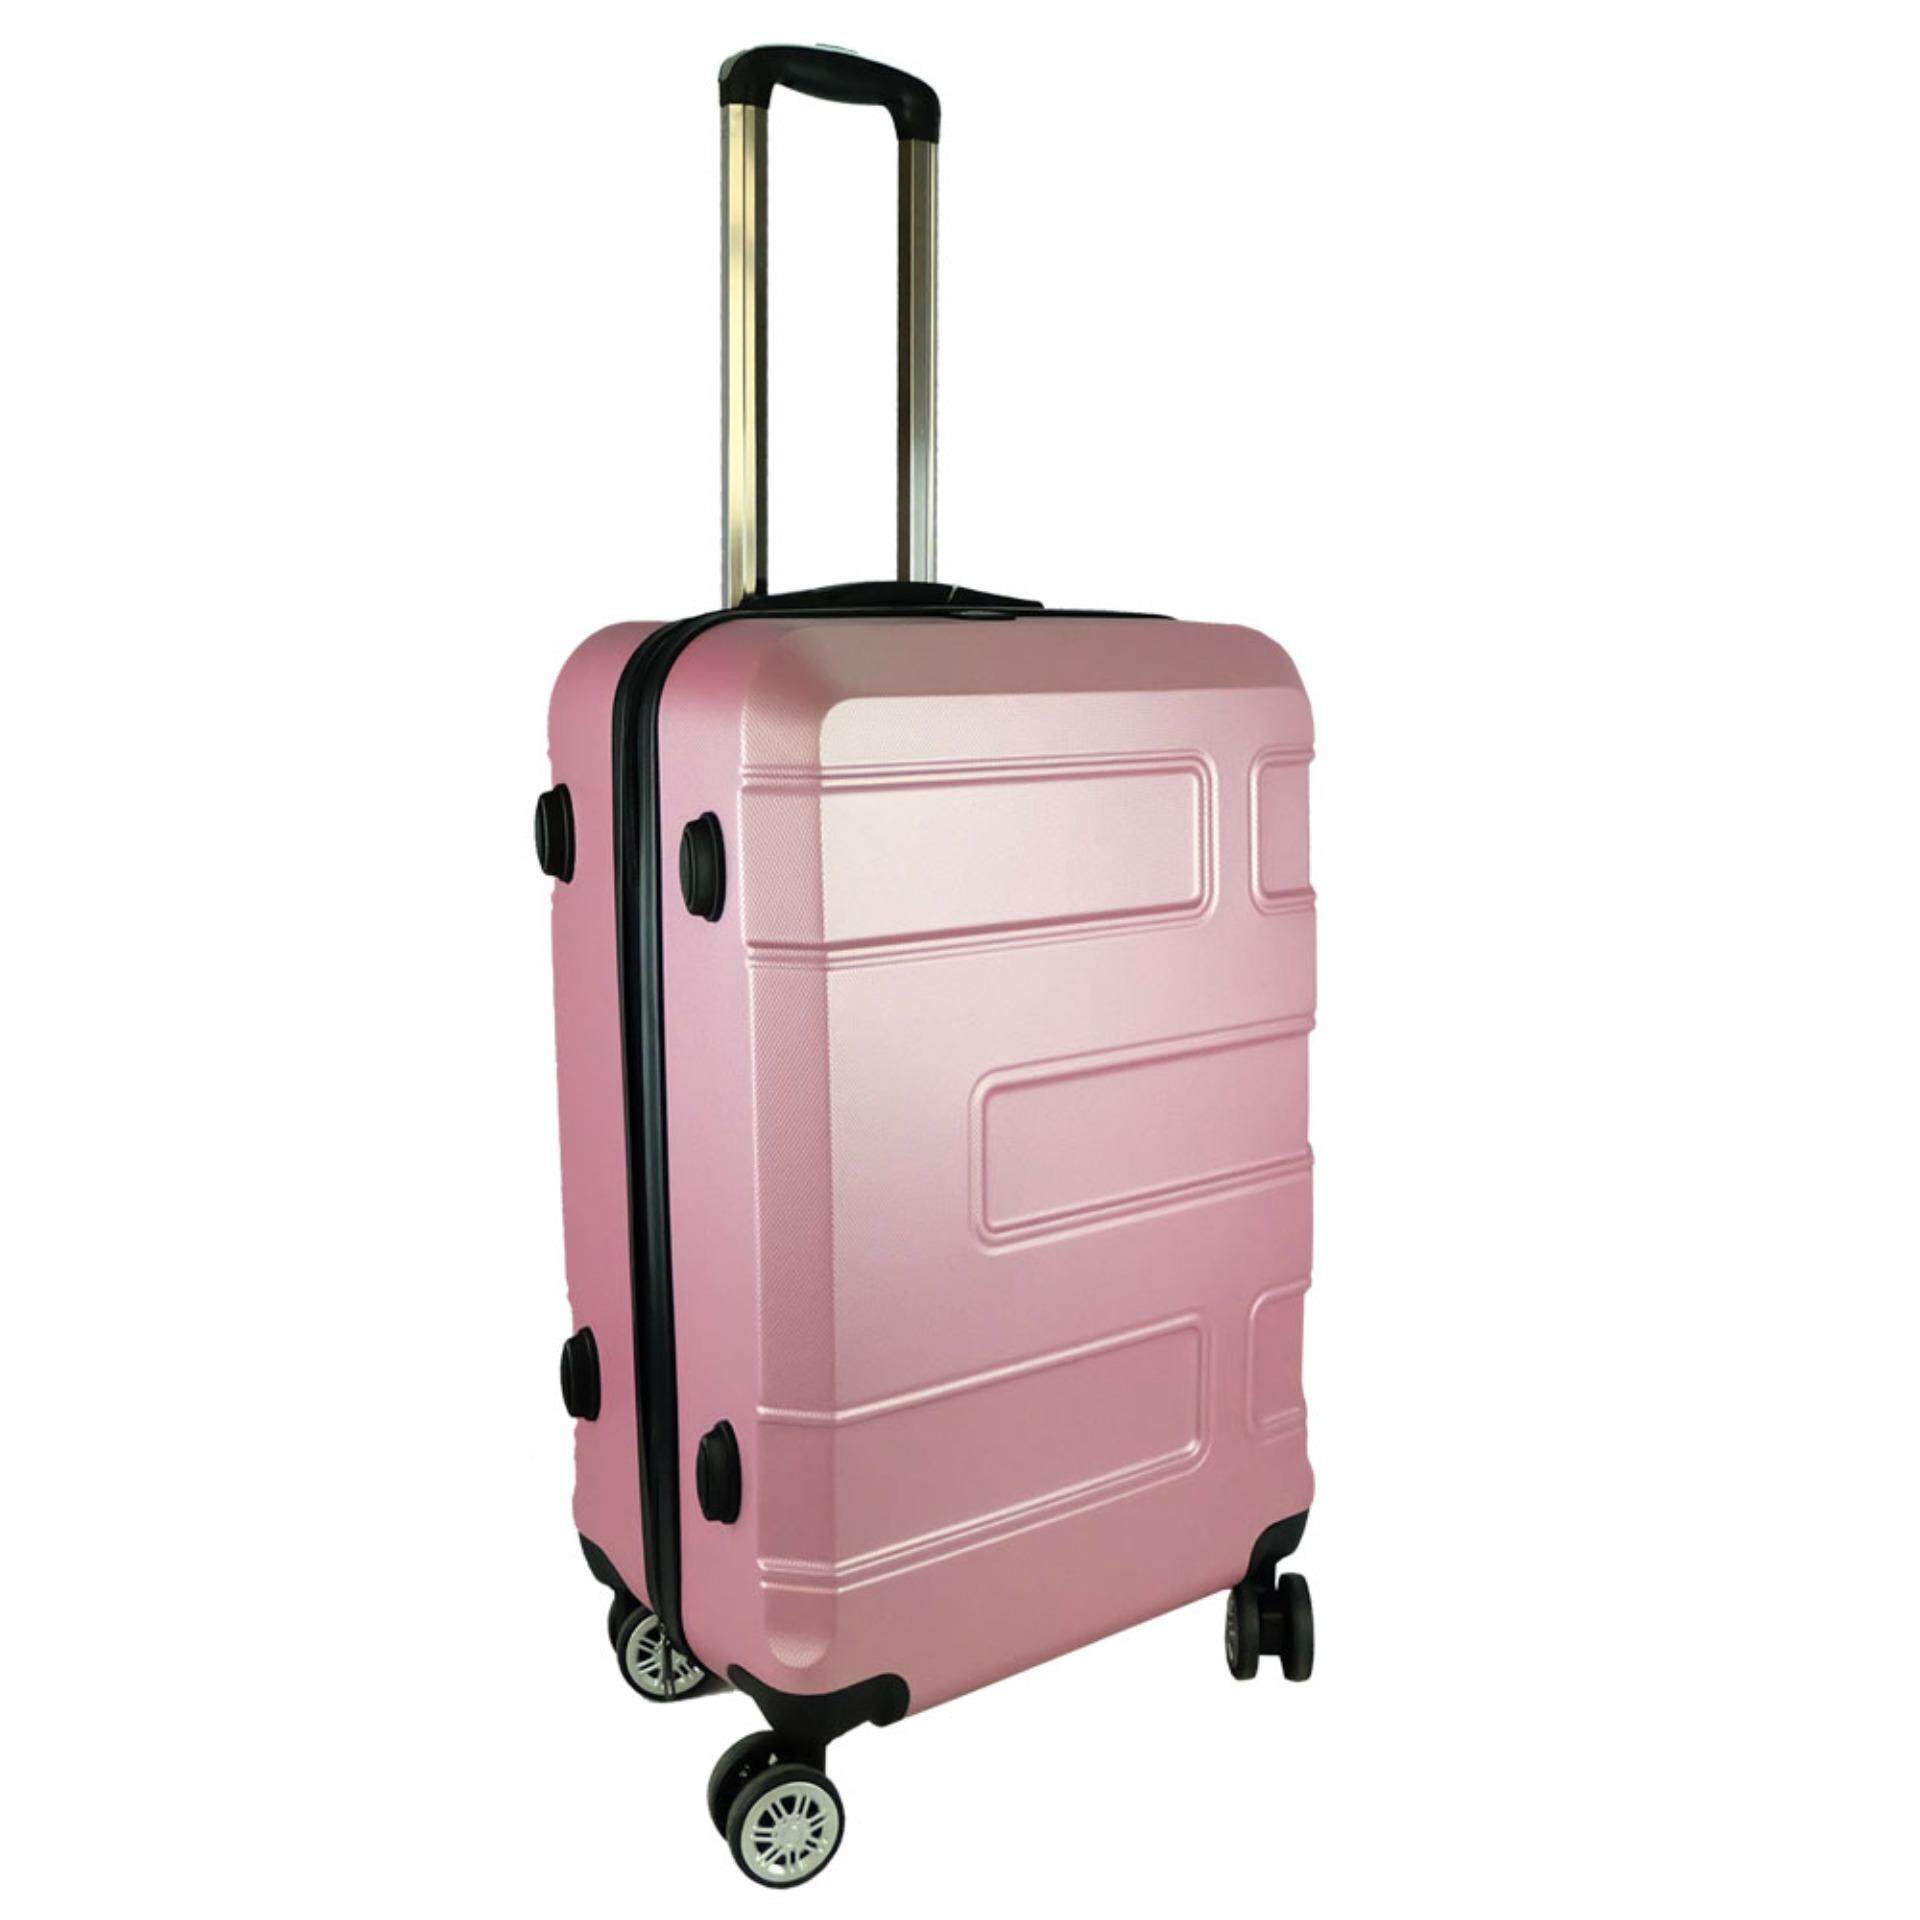 Waterpolo WA1792- 24 inch ABS Hard Case Trolley- Pink